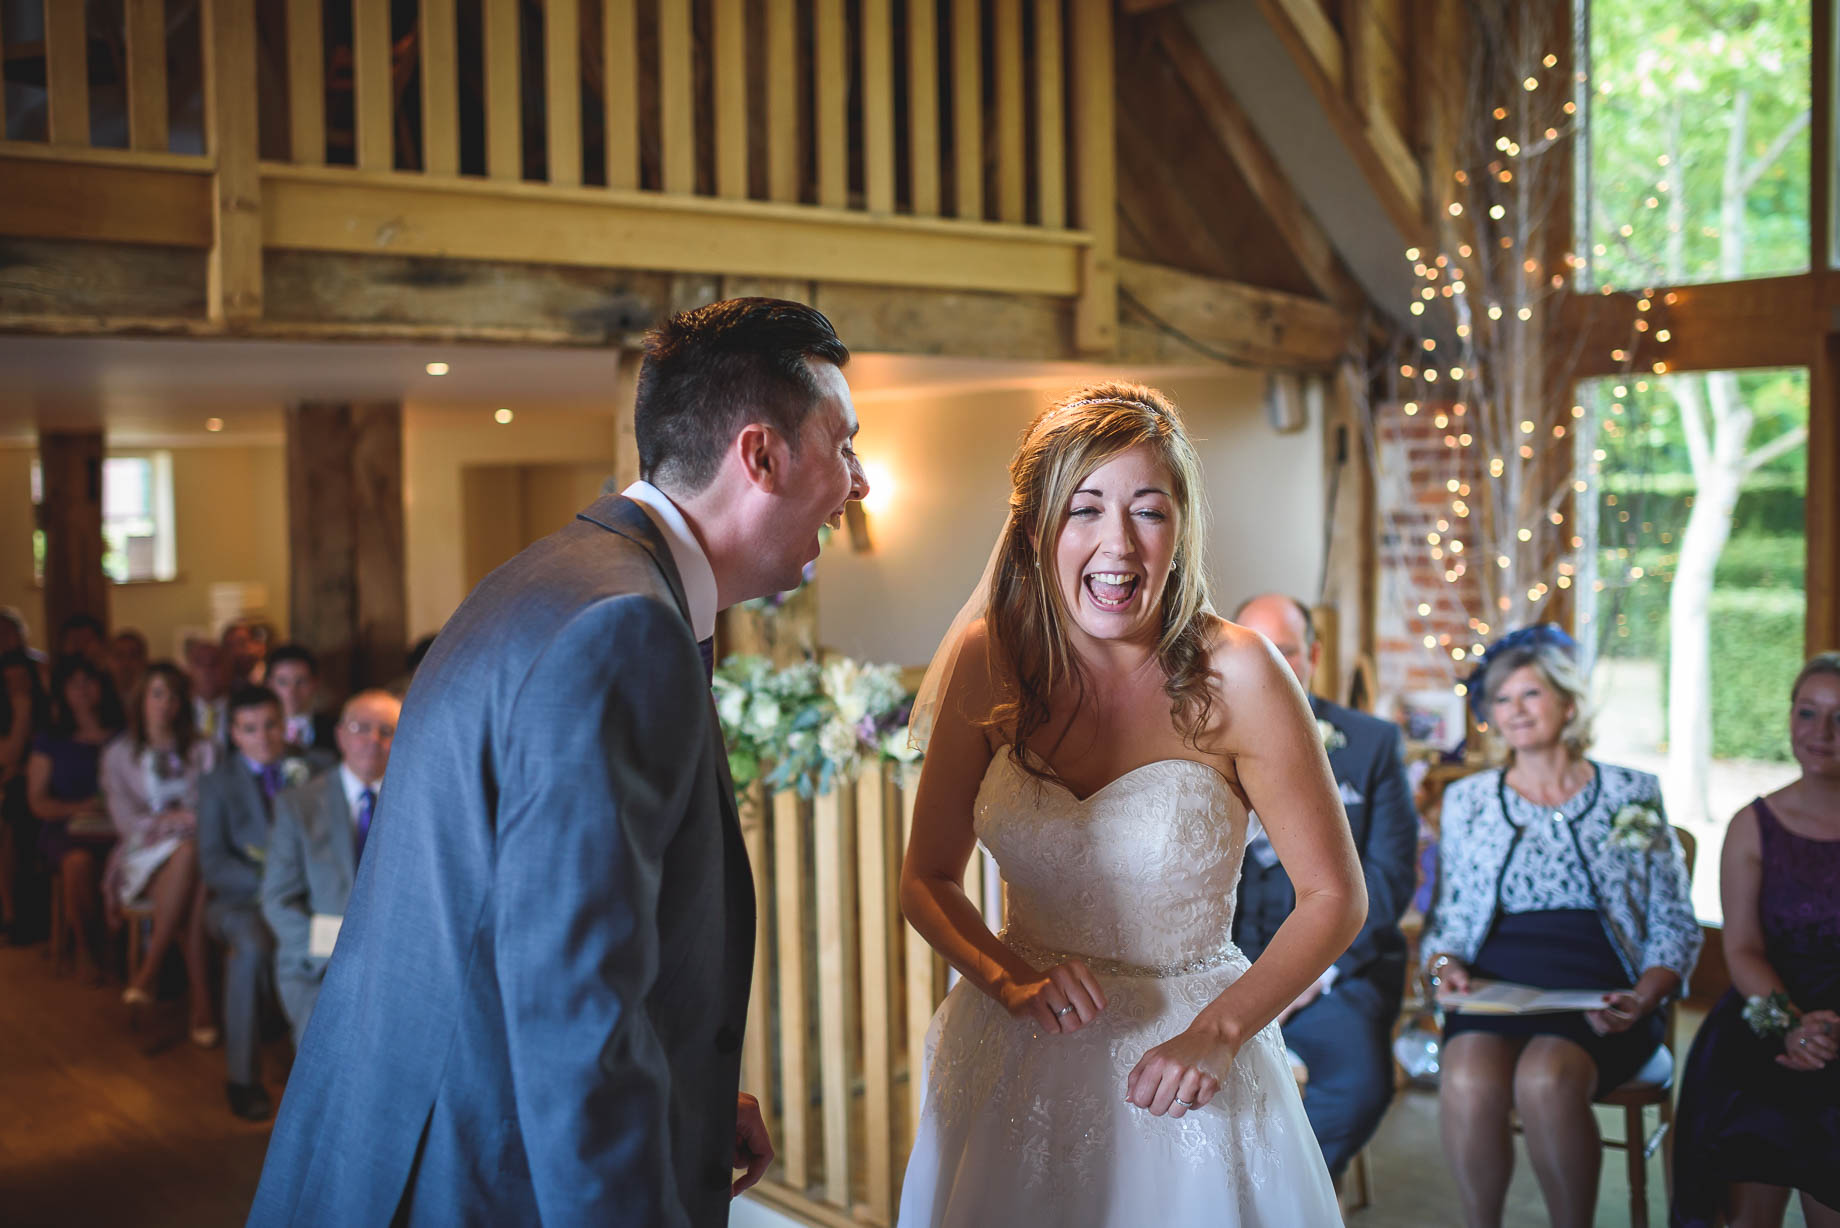 Bury Court Barn wedding photography - Guy Collier - Kirsty and Lewis (63 of 150)